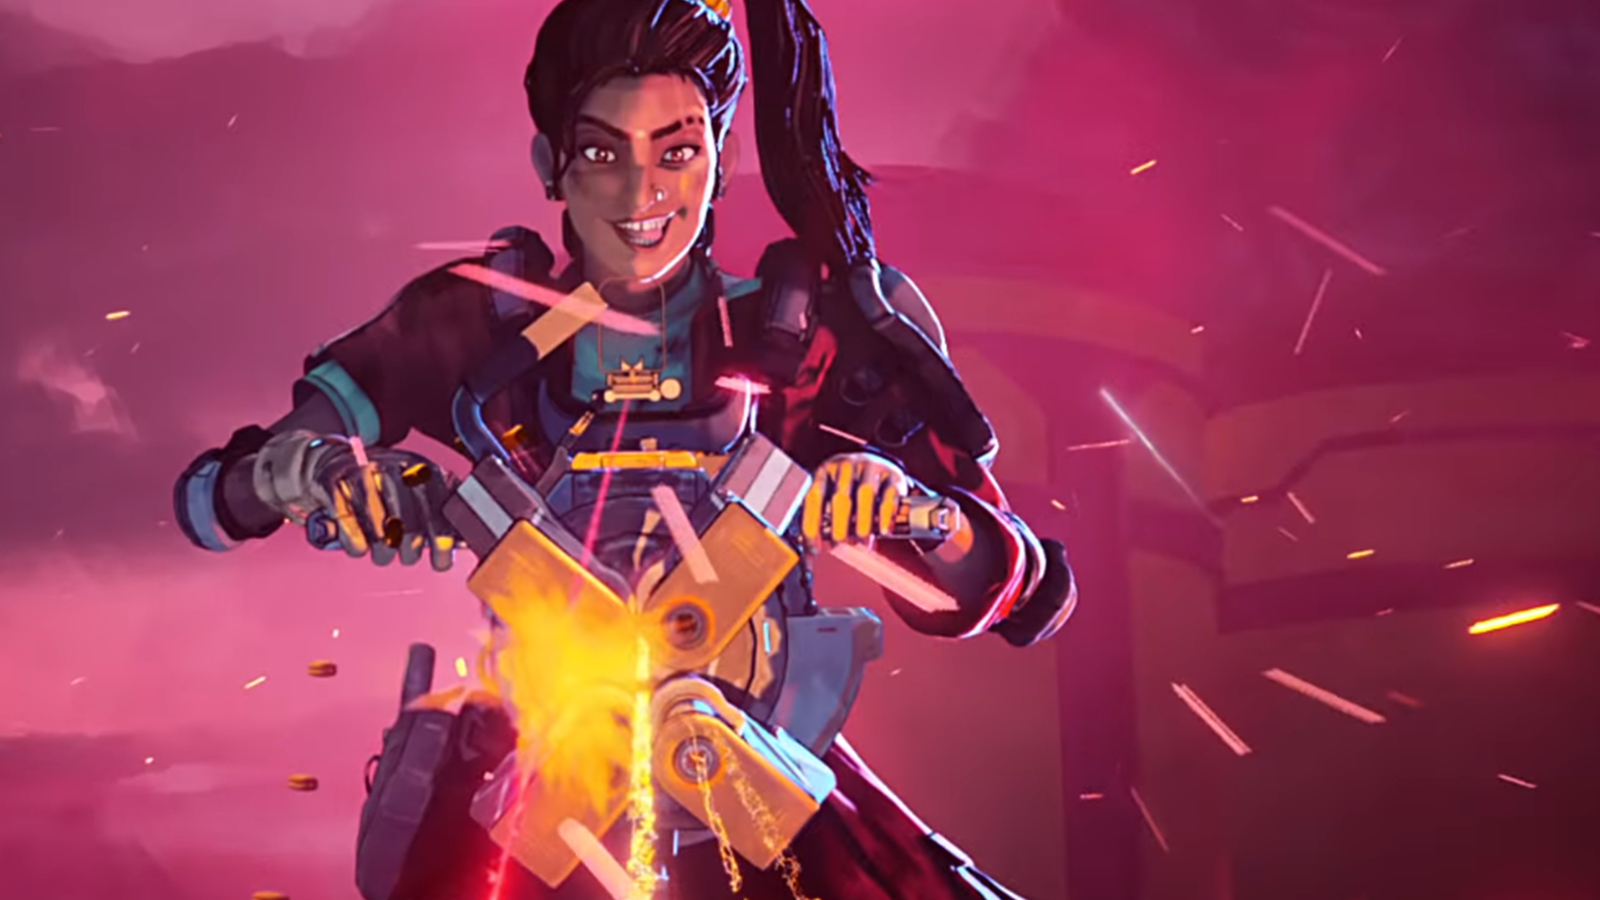 The new Apex Legend leaks have confirmed Rampart will be a defensive Legend.